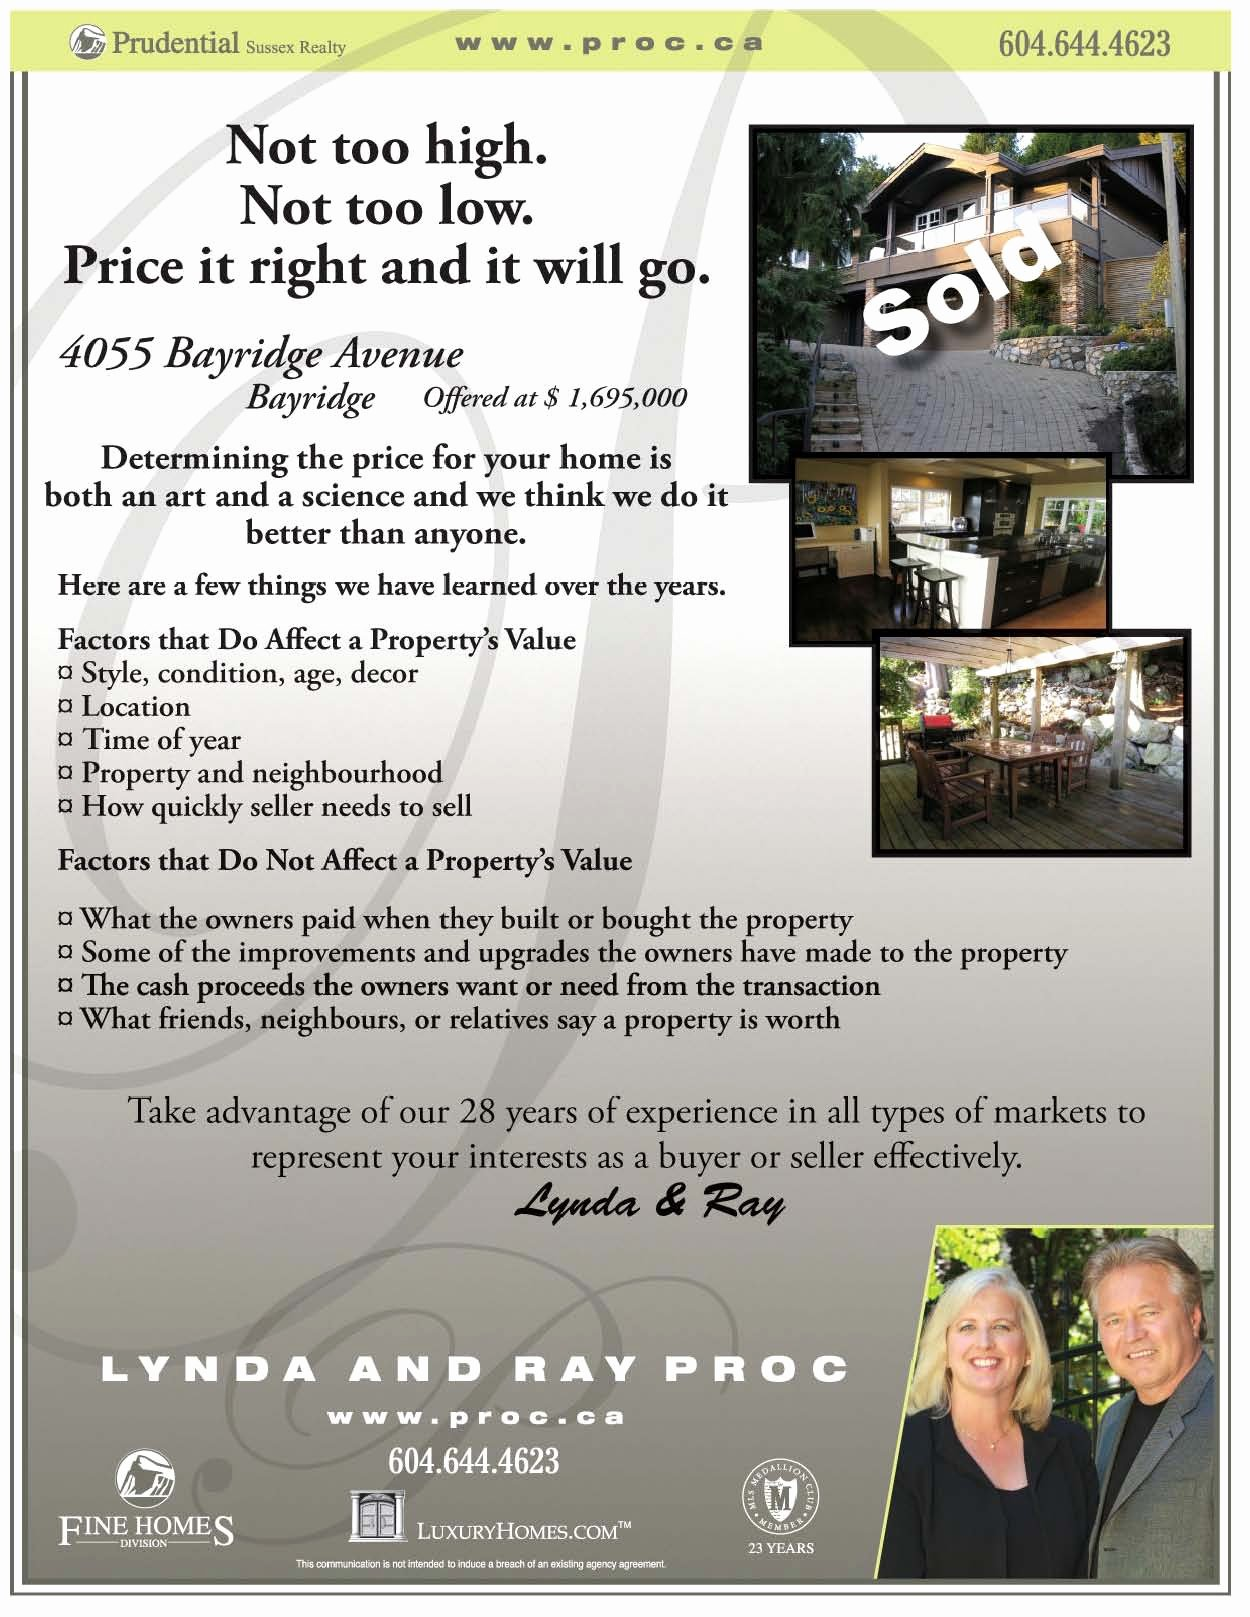 Real Estate Marketing Flyers Lovely Realtor Marketing Do Just sold Flyers Work